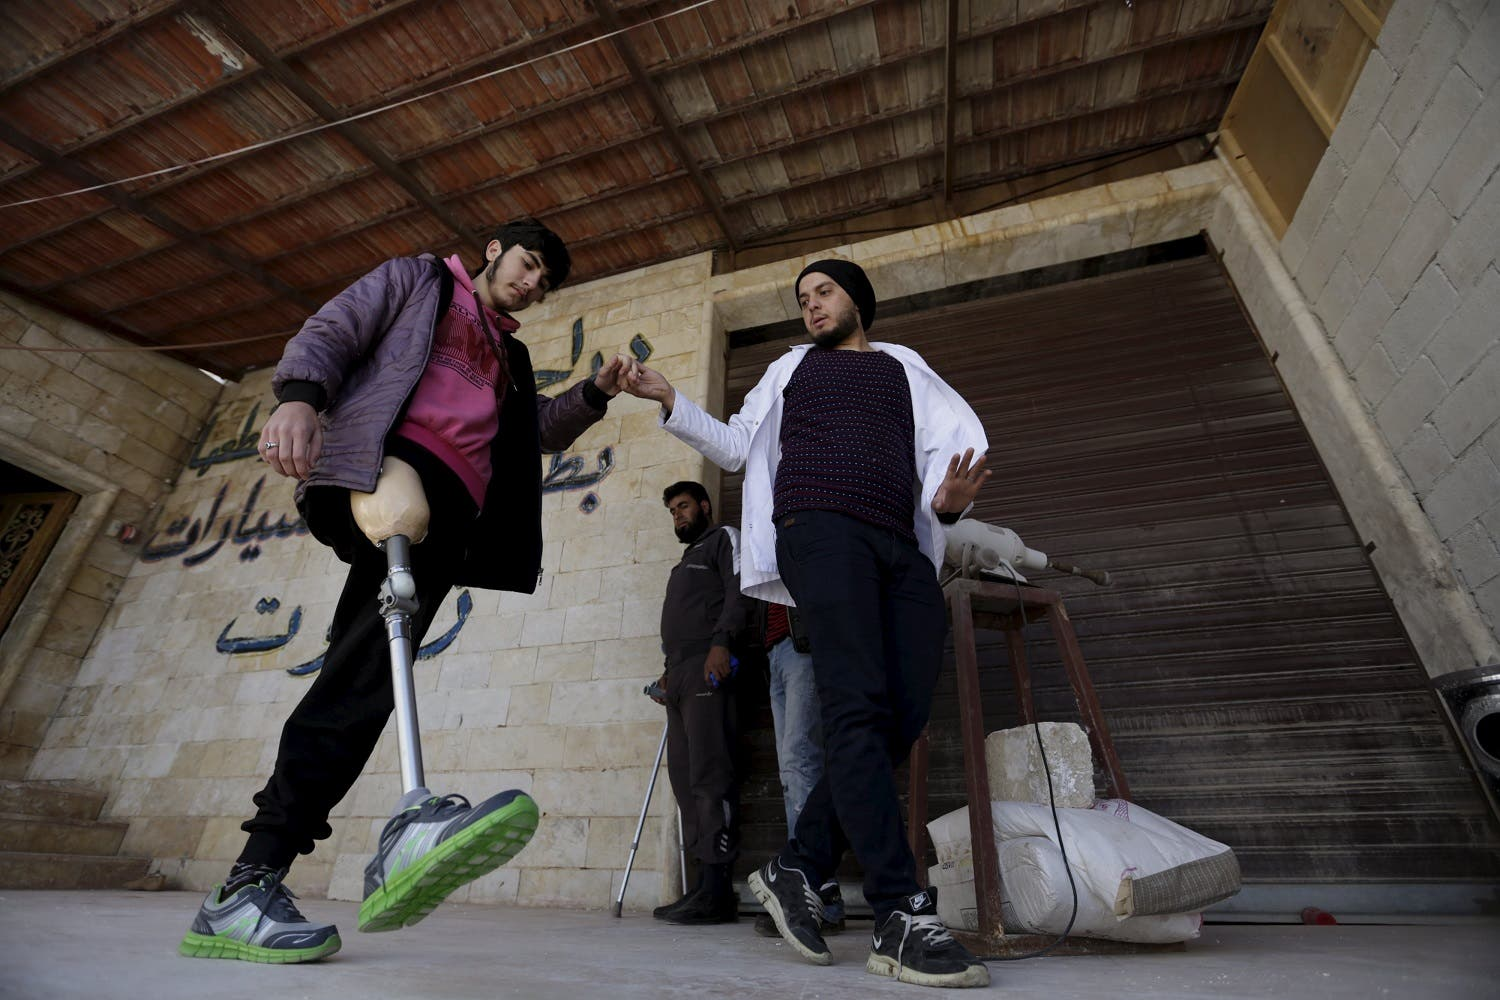 Khamis (R), 24, helps a man with an amputated leg walk using an artificial limb in the rebel-controlled area of Maaret al-Numan town in Idlib province, Syria March 20, 2016. Reuters